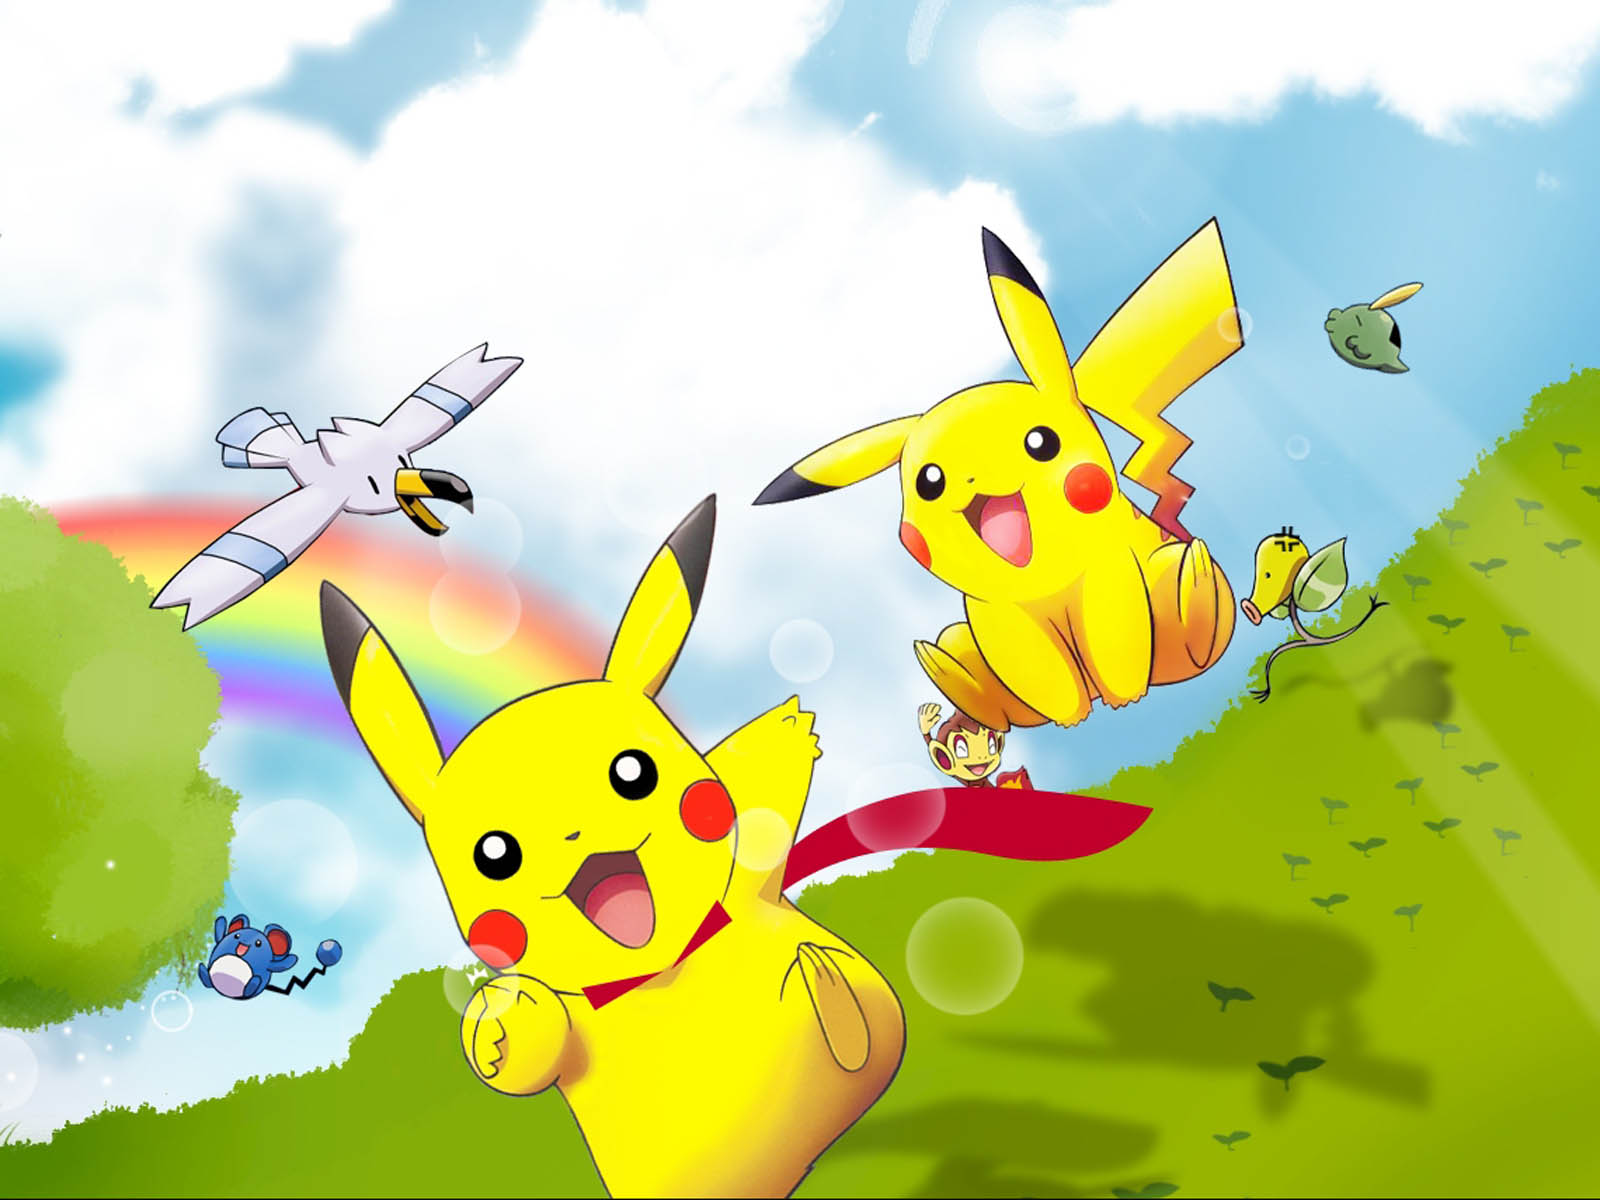 Pikachu Pokemon Wallpapers Images Photos Pictures and Backgrounds 1600x1200